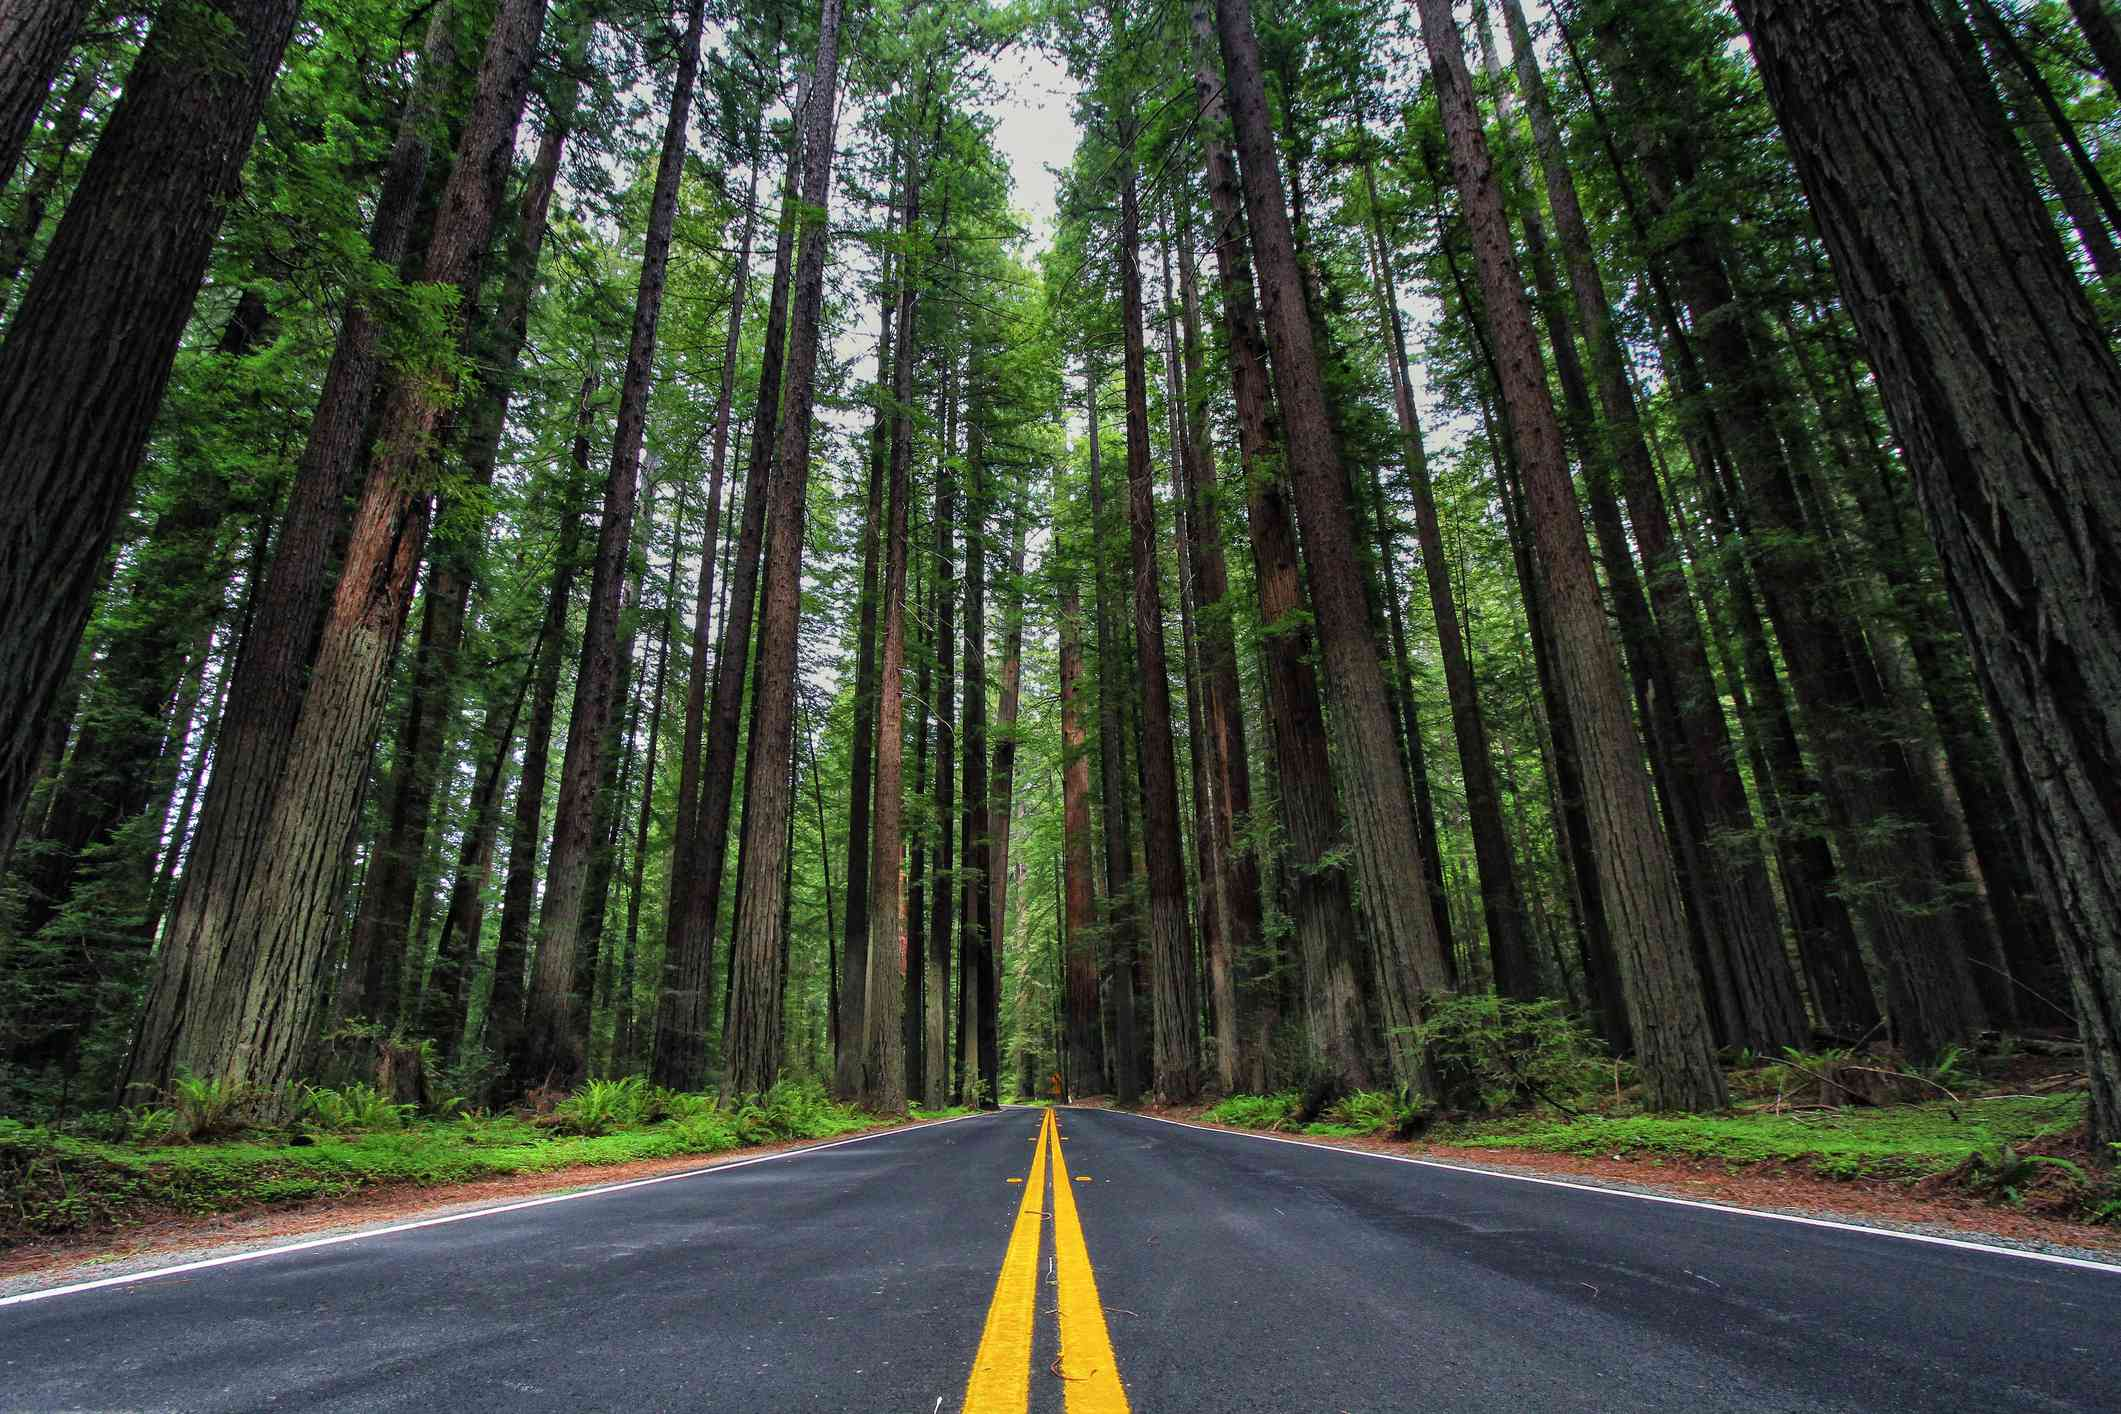 Road and redwoods (Sequoioideae) in Avenue of the Giants, California, USA